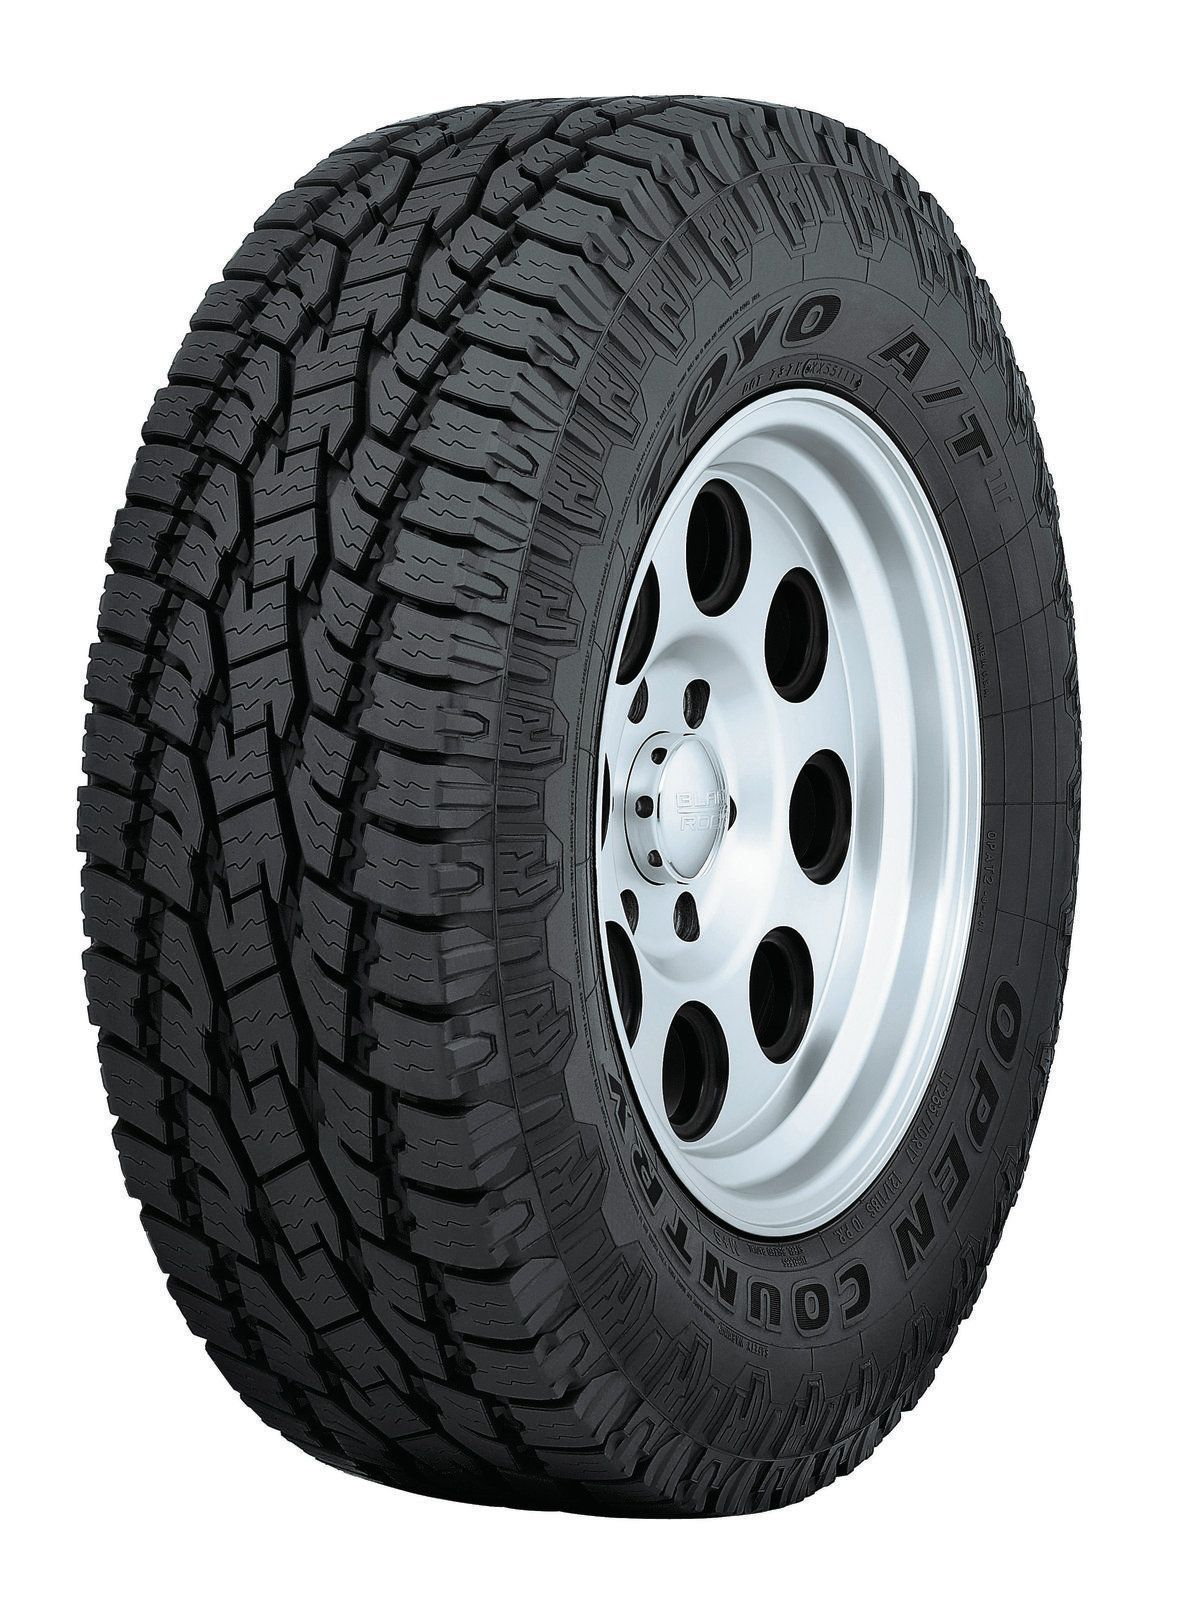 Toyo Open Country A/T 245/75 R16 120/116S